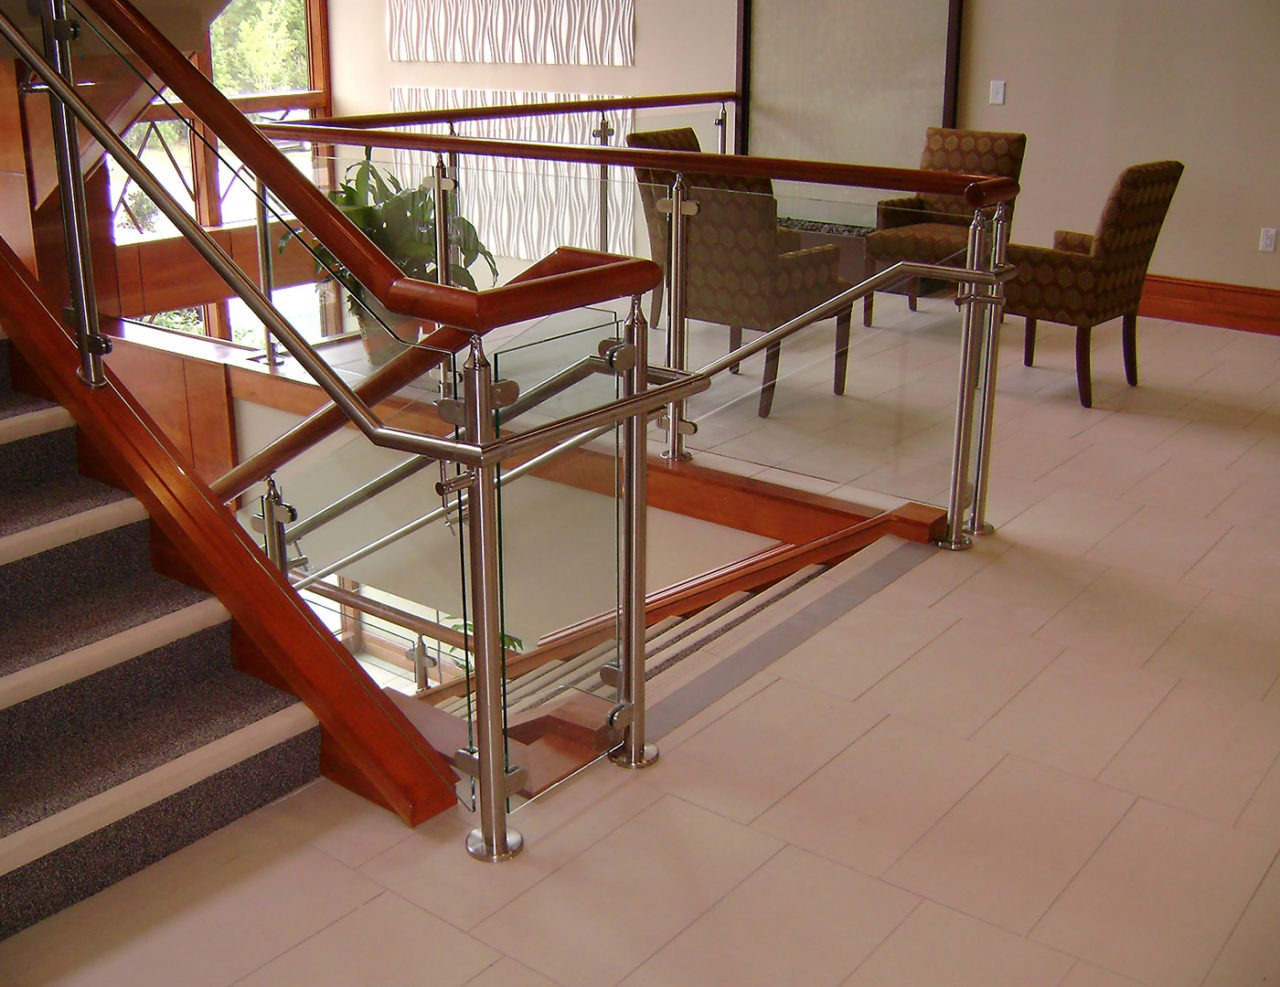 Monaco glass railing with stainless steel handrail and wood top cap